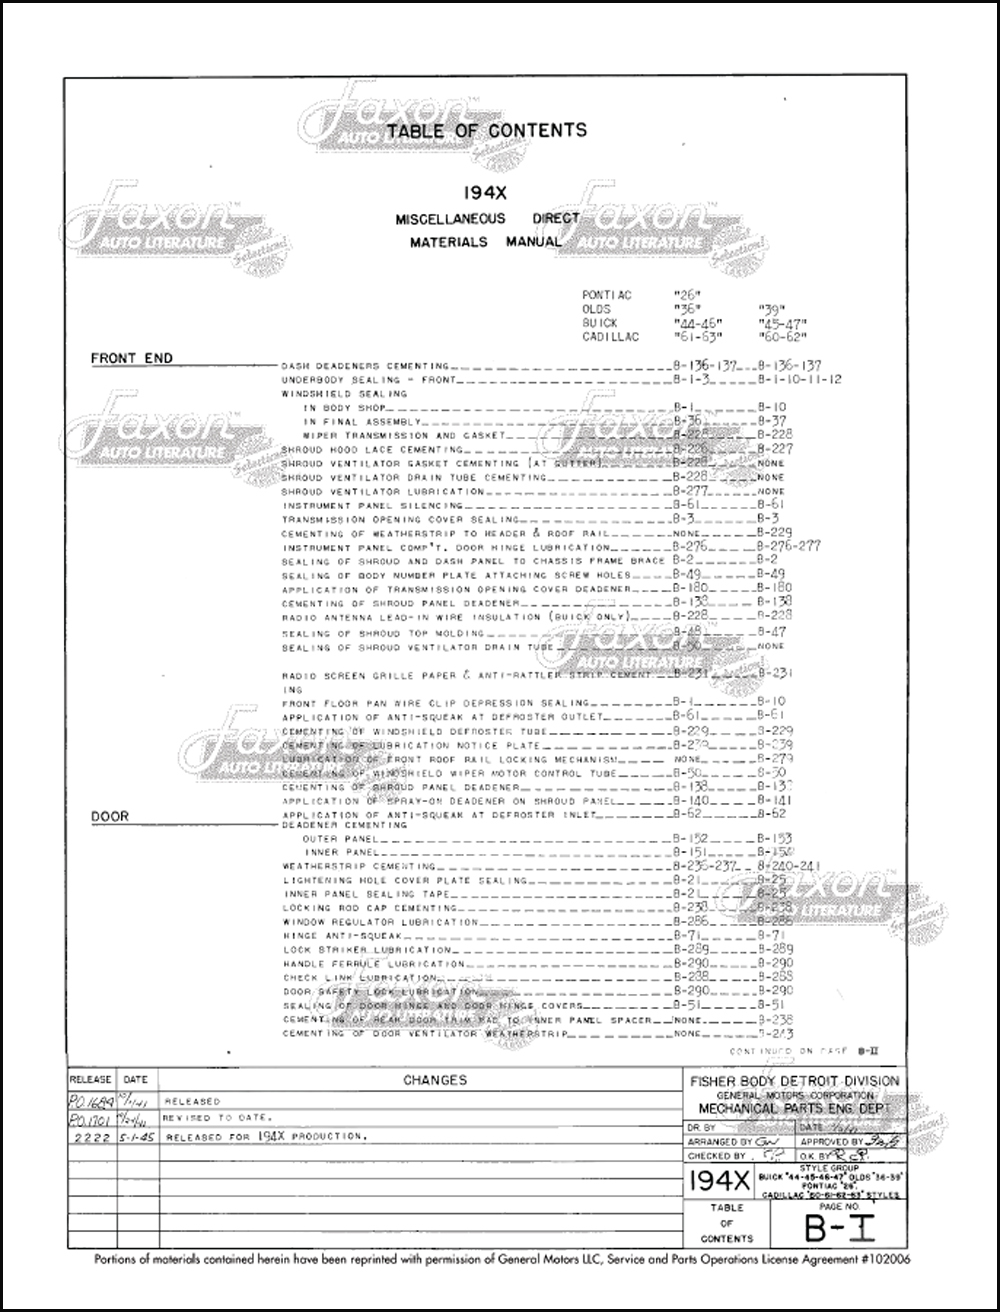 Electrical Wiring Diagram For 1942 Chevrolet Trucks Spare